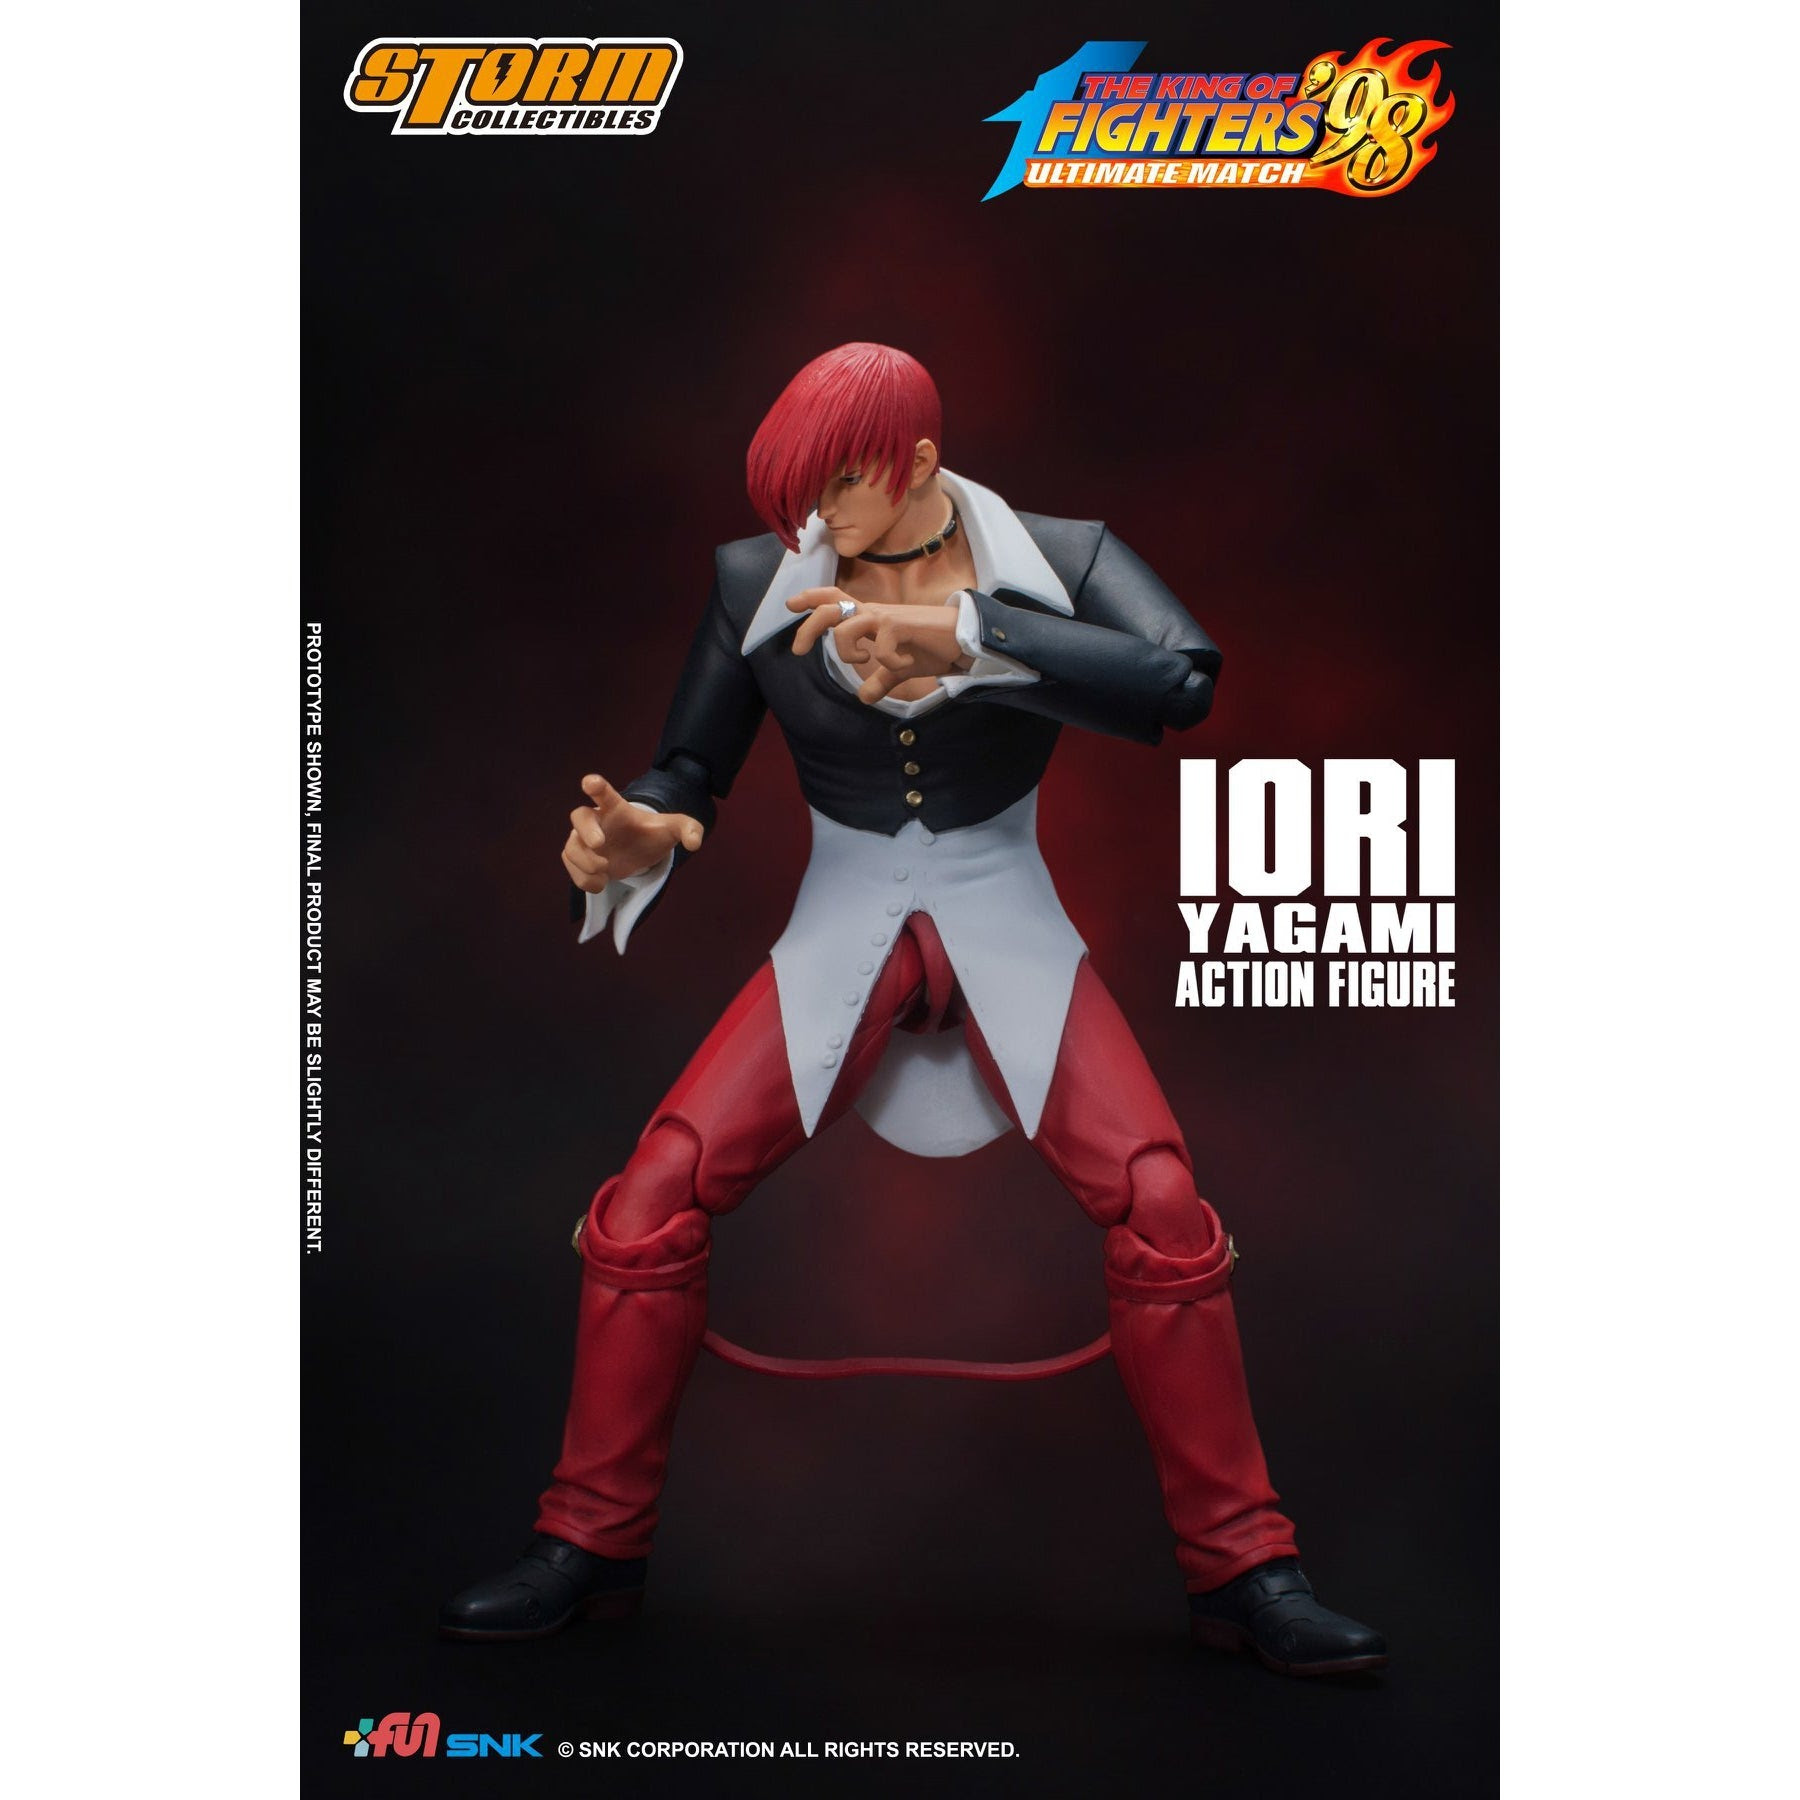 Image of King of Fighters 98 Iori Yagami Figure - Q4 2020